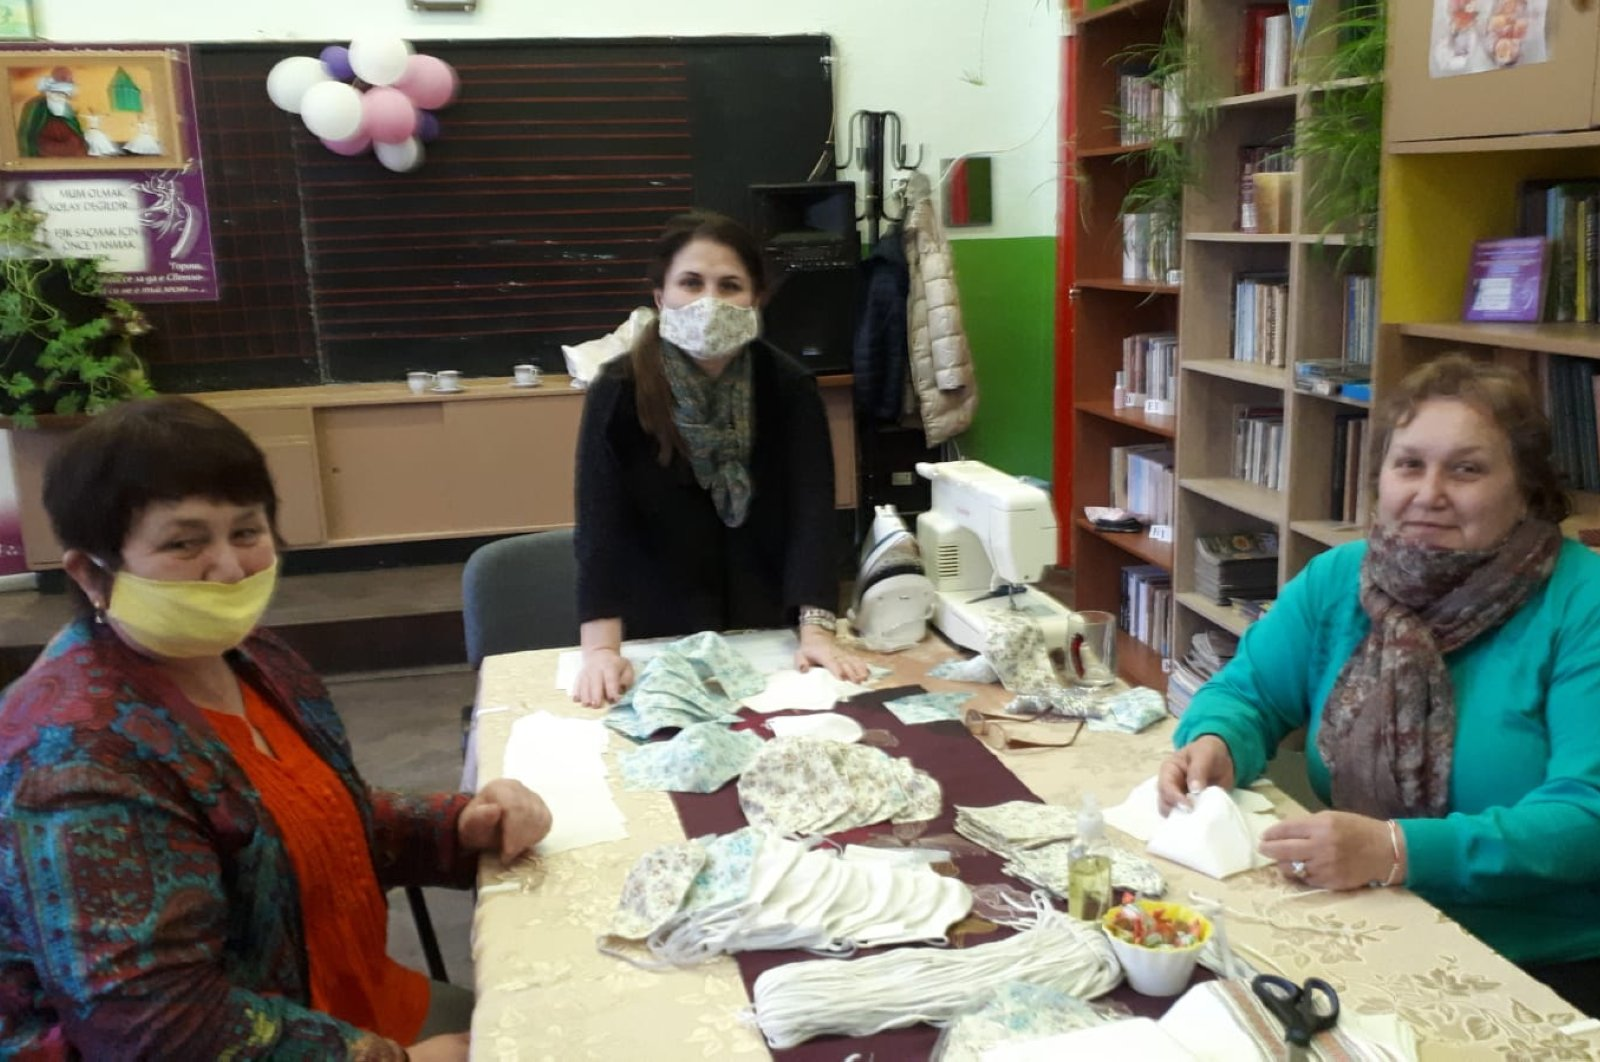 Three women sew masks for the needy in the town of Dobric, Wednesday, March 25, 2020. (DHA Photo)